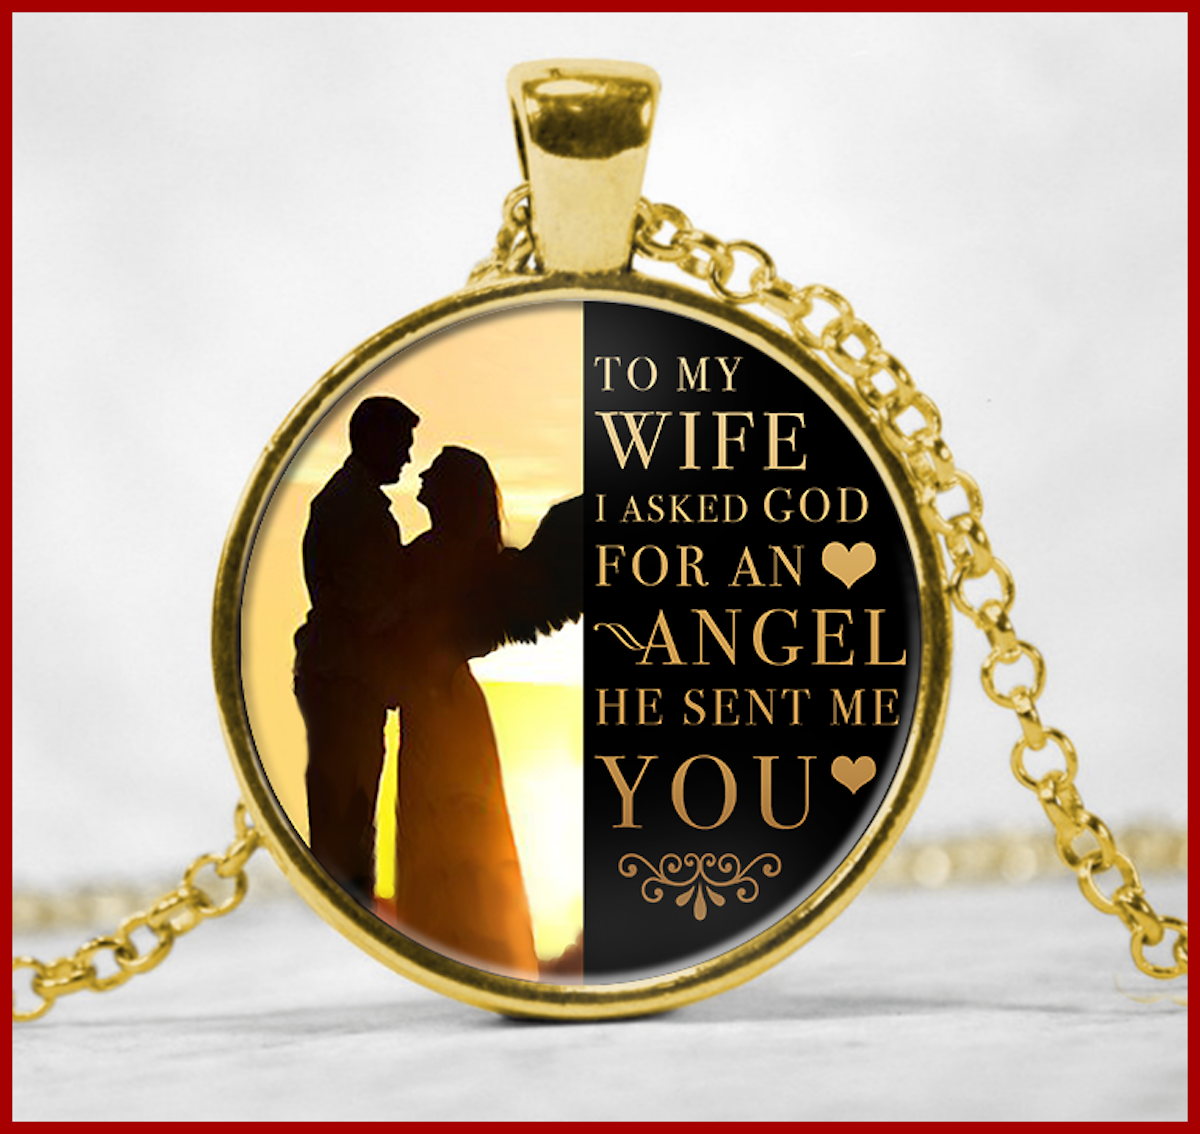 To My Wife - God Sent Me You-4537